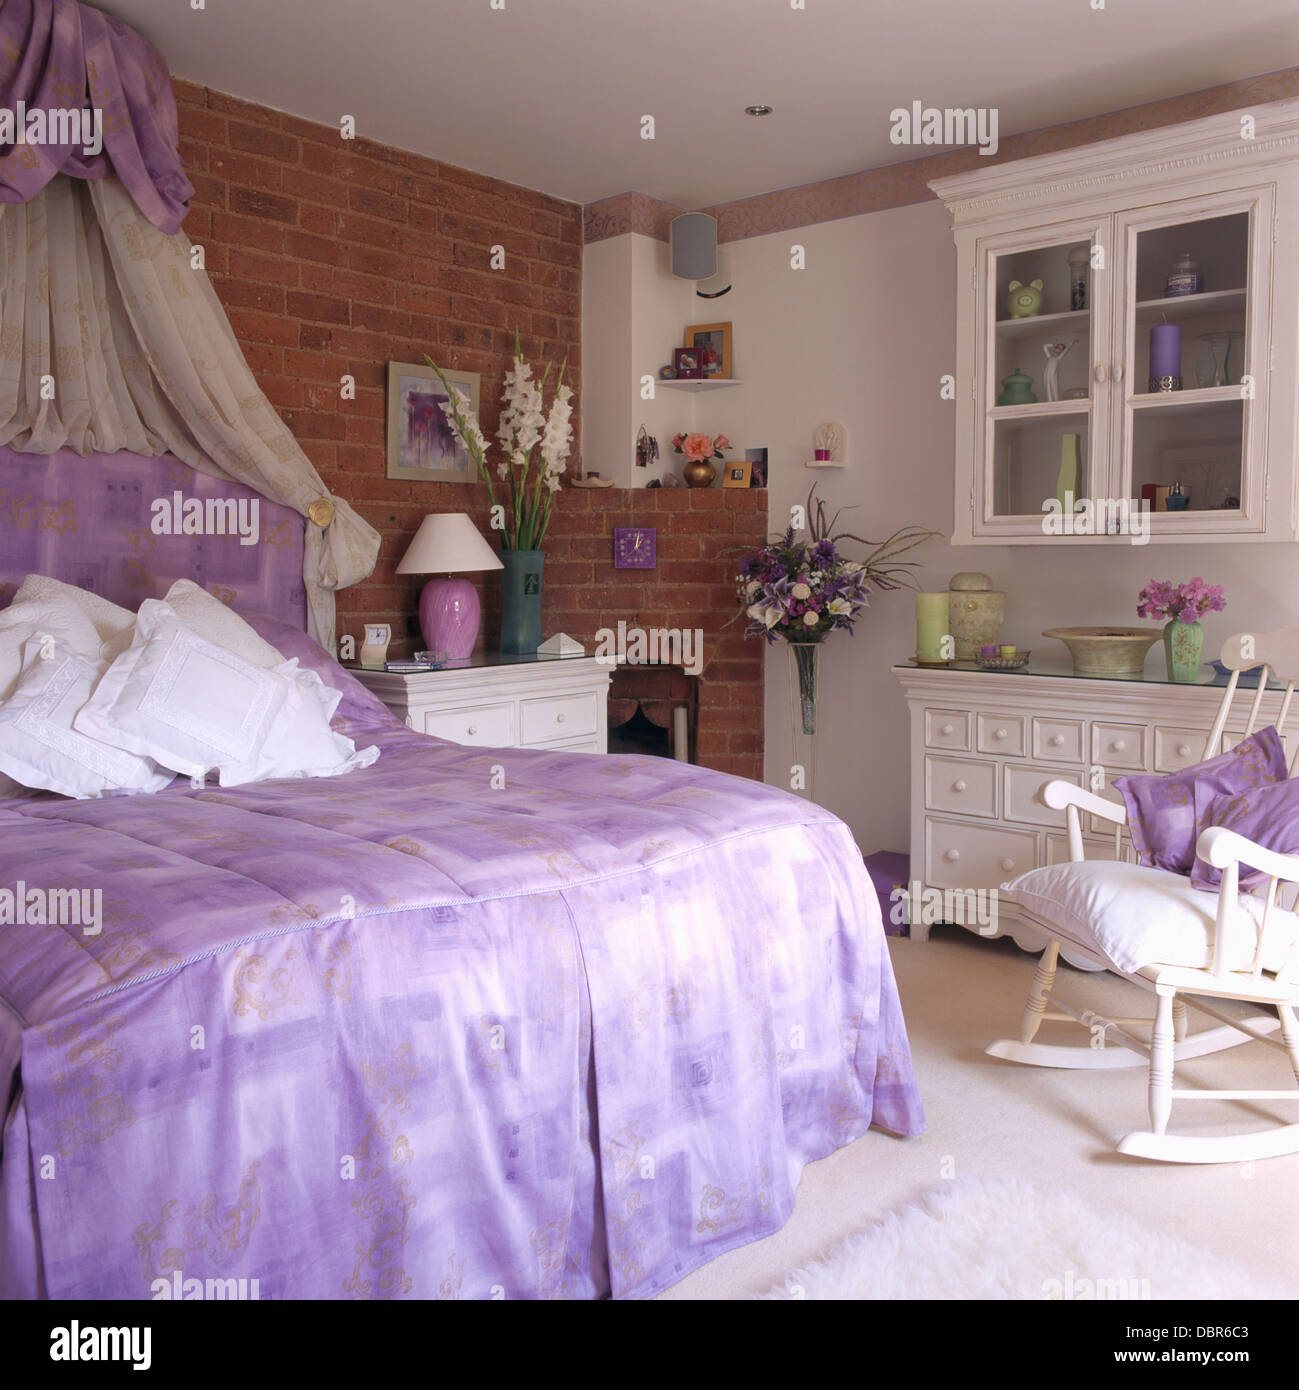 White voile above bed white photos white voile above bed white images alamy for Voile et rideaux